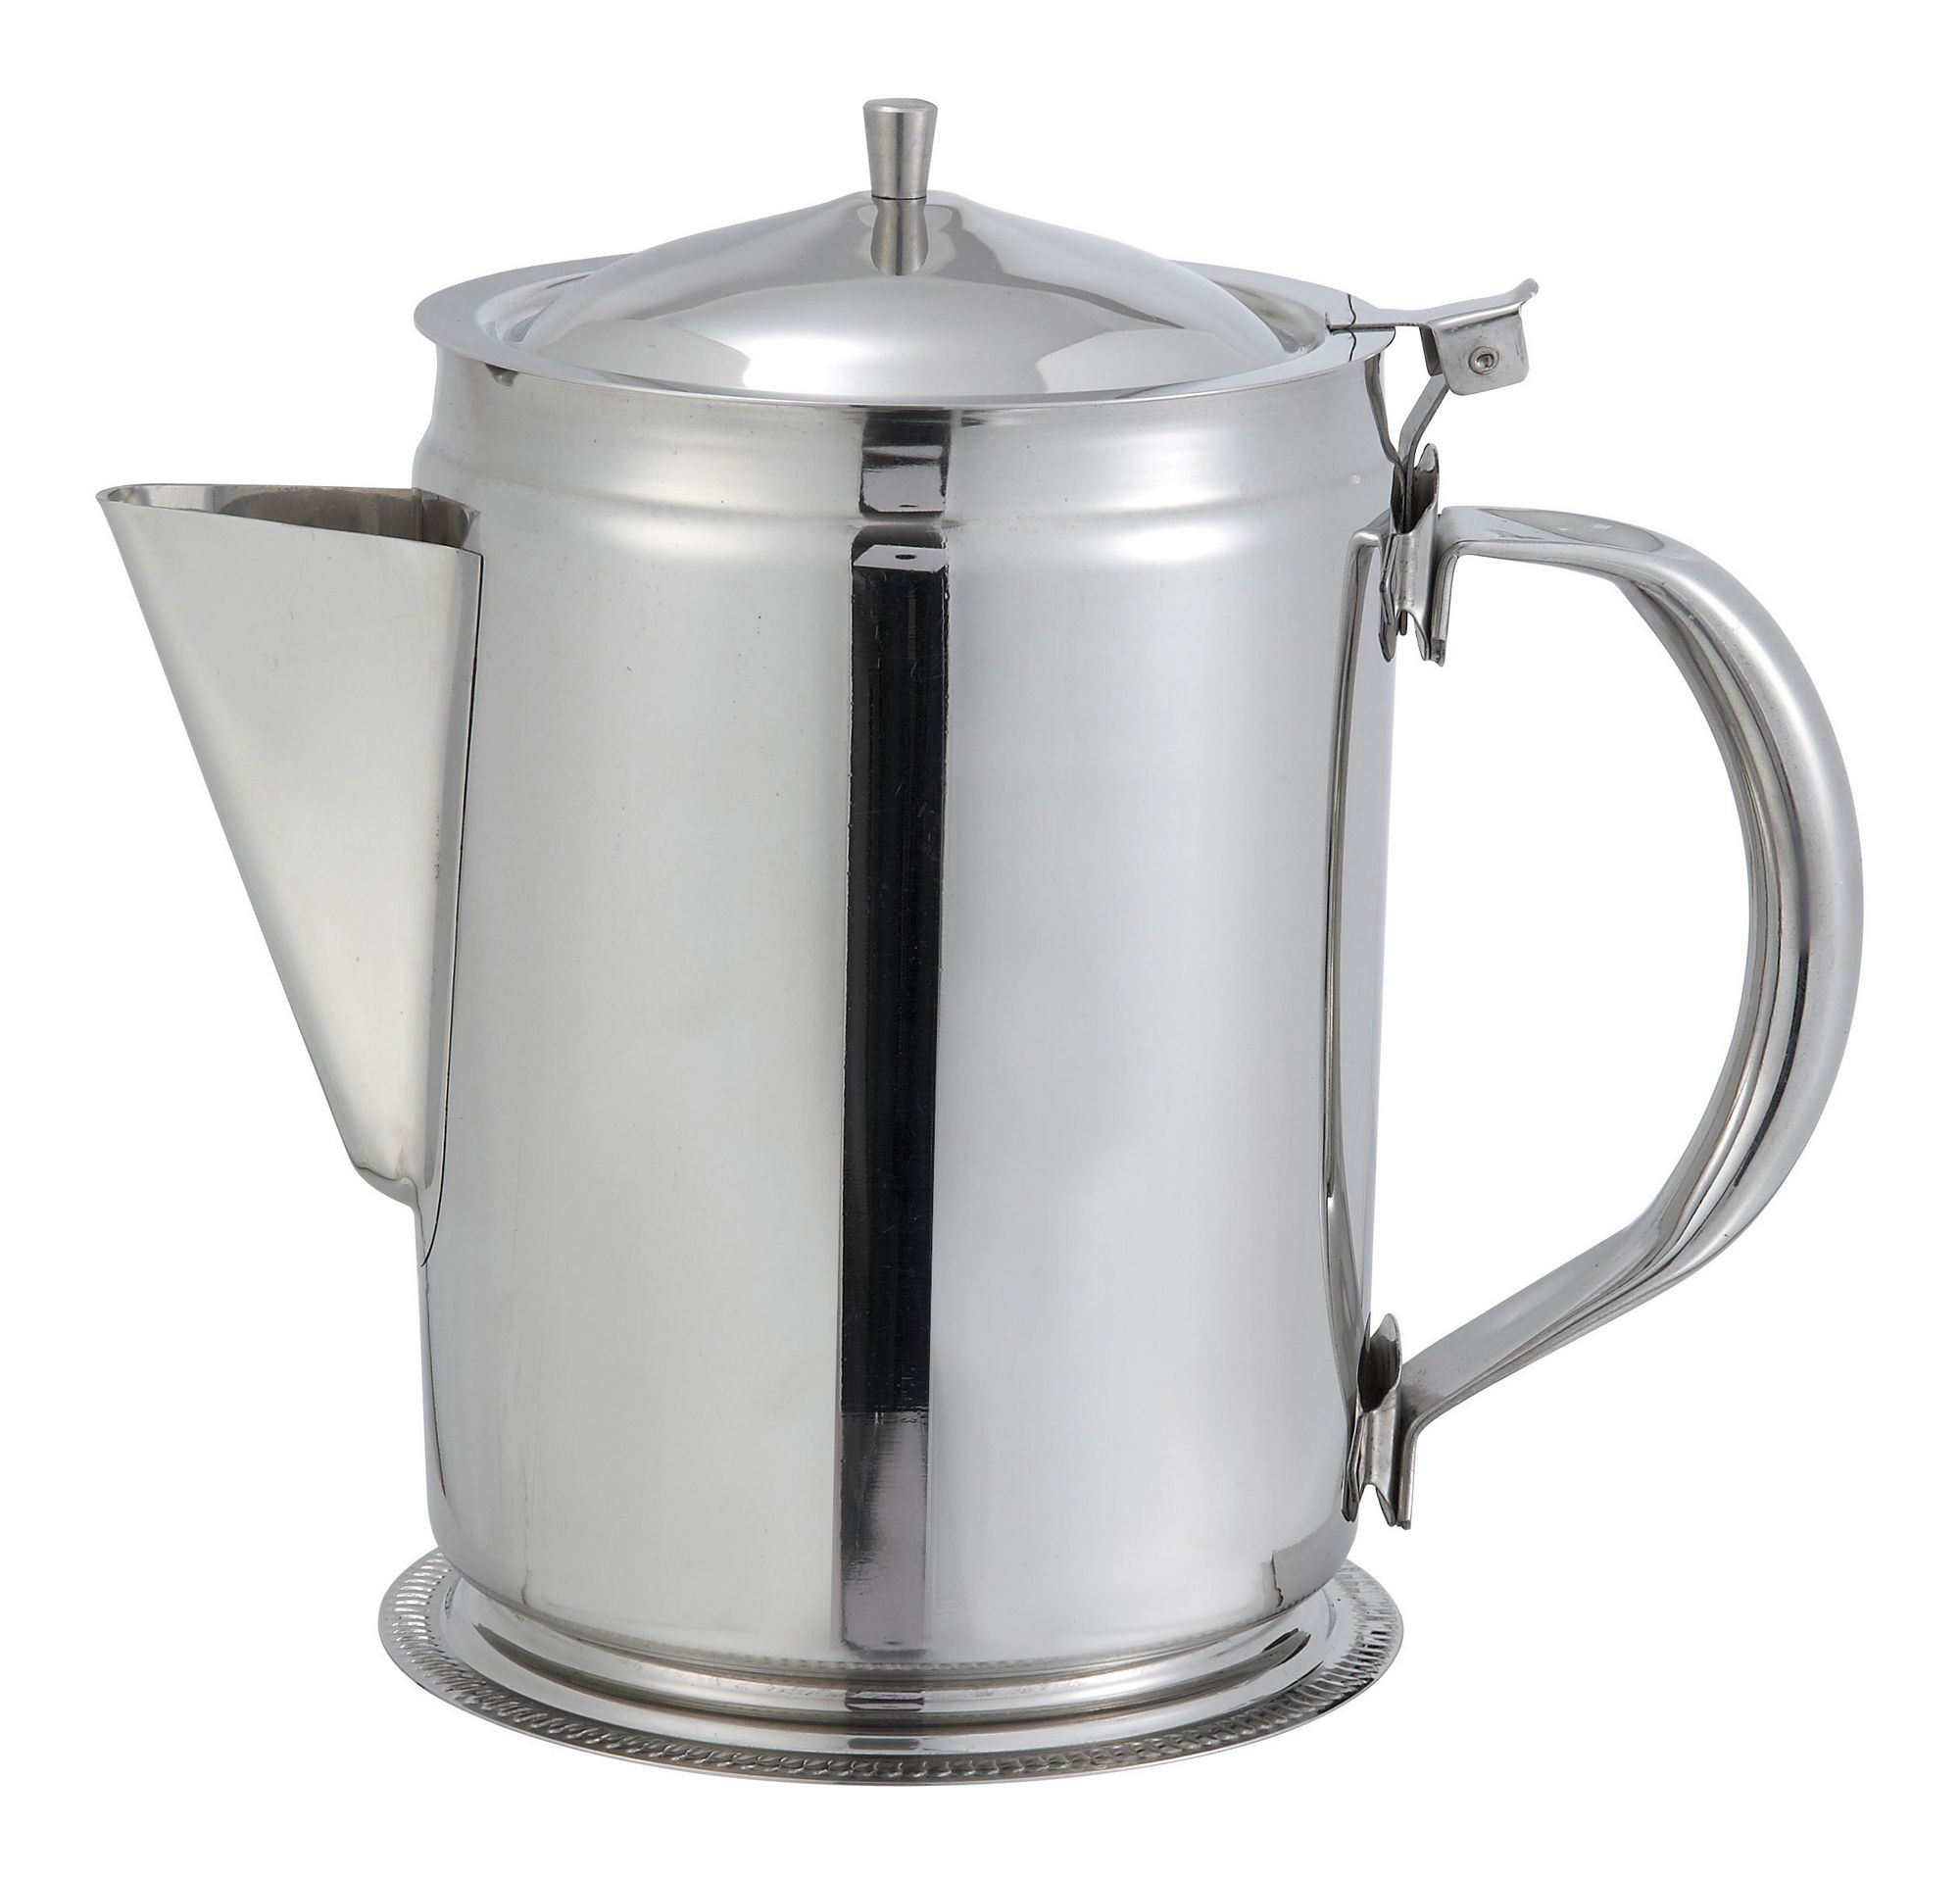 Stainless Steel 64-Oz. Beverage Server With Cover/Handle